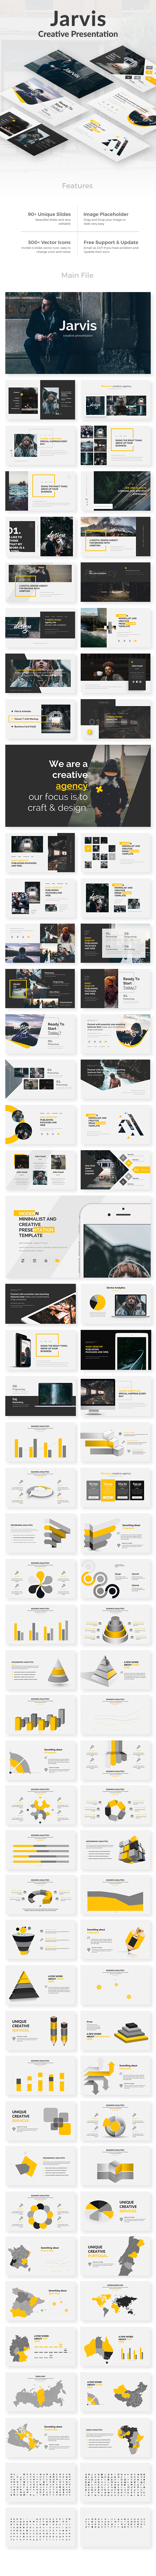 Jarvis Creative Keynote Template - Creative Keynote Templates